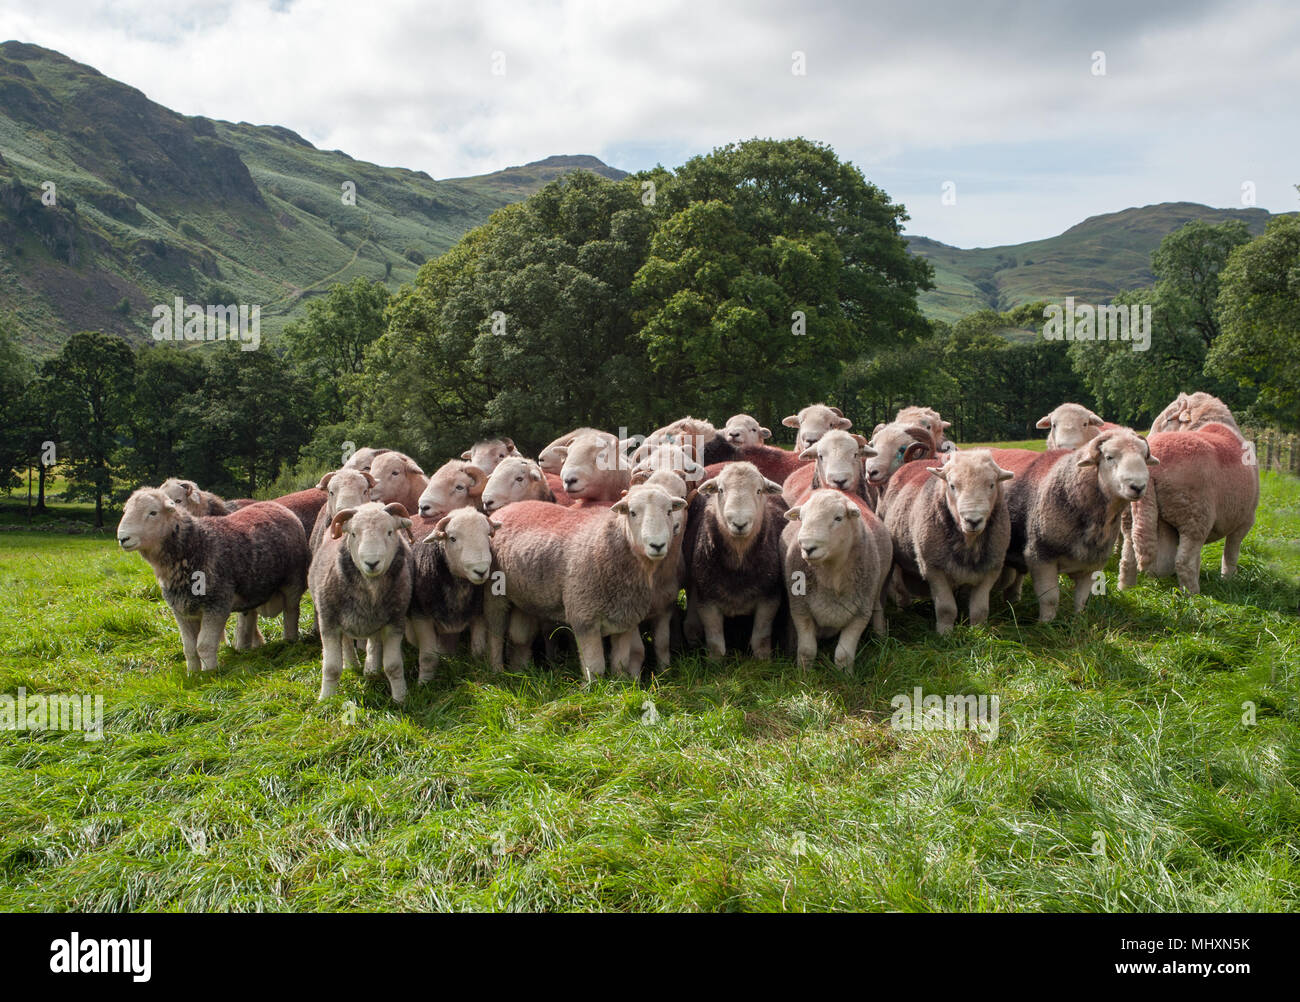 Béliers Herdwick dans Eskdale, West Cumbria, près de Scafell Pike, la plus haute montagne d'Angleterre, le Lake District. Photo Stock